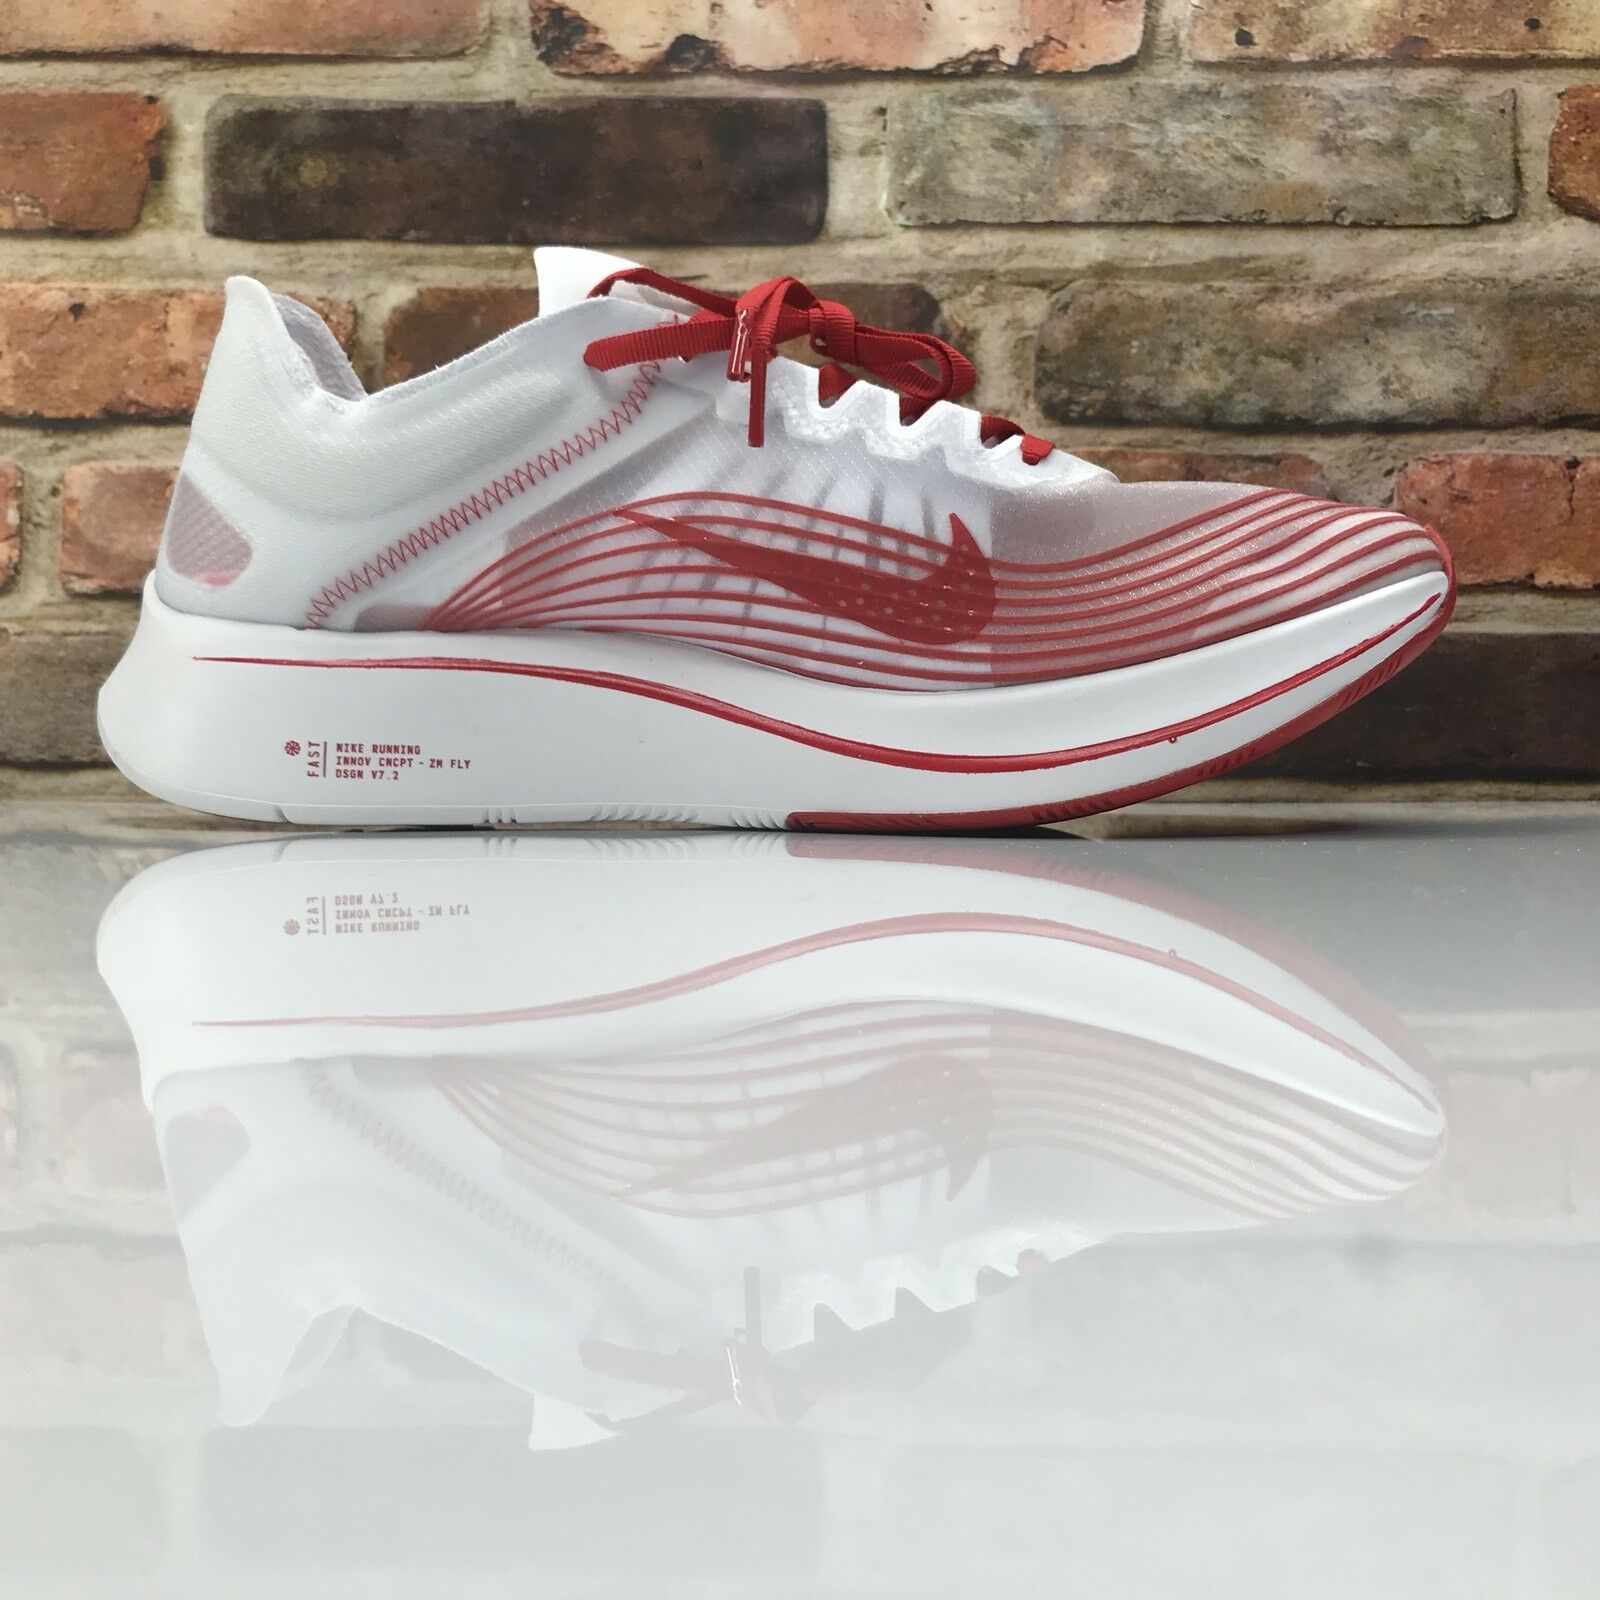 Nike Zoom Fly SP Running shoes Mens Size 10 Red AJ9282 100 BREAKING 2 RACING